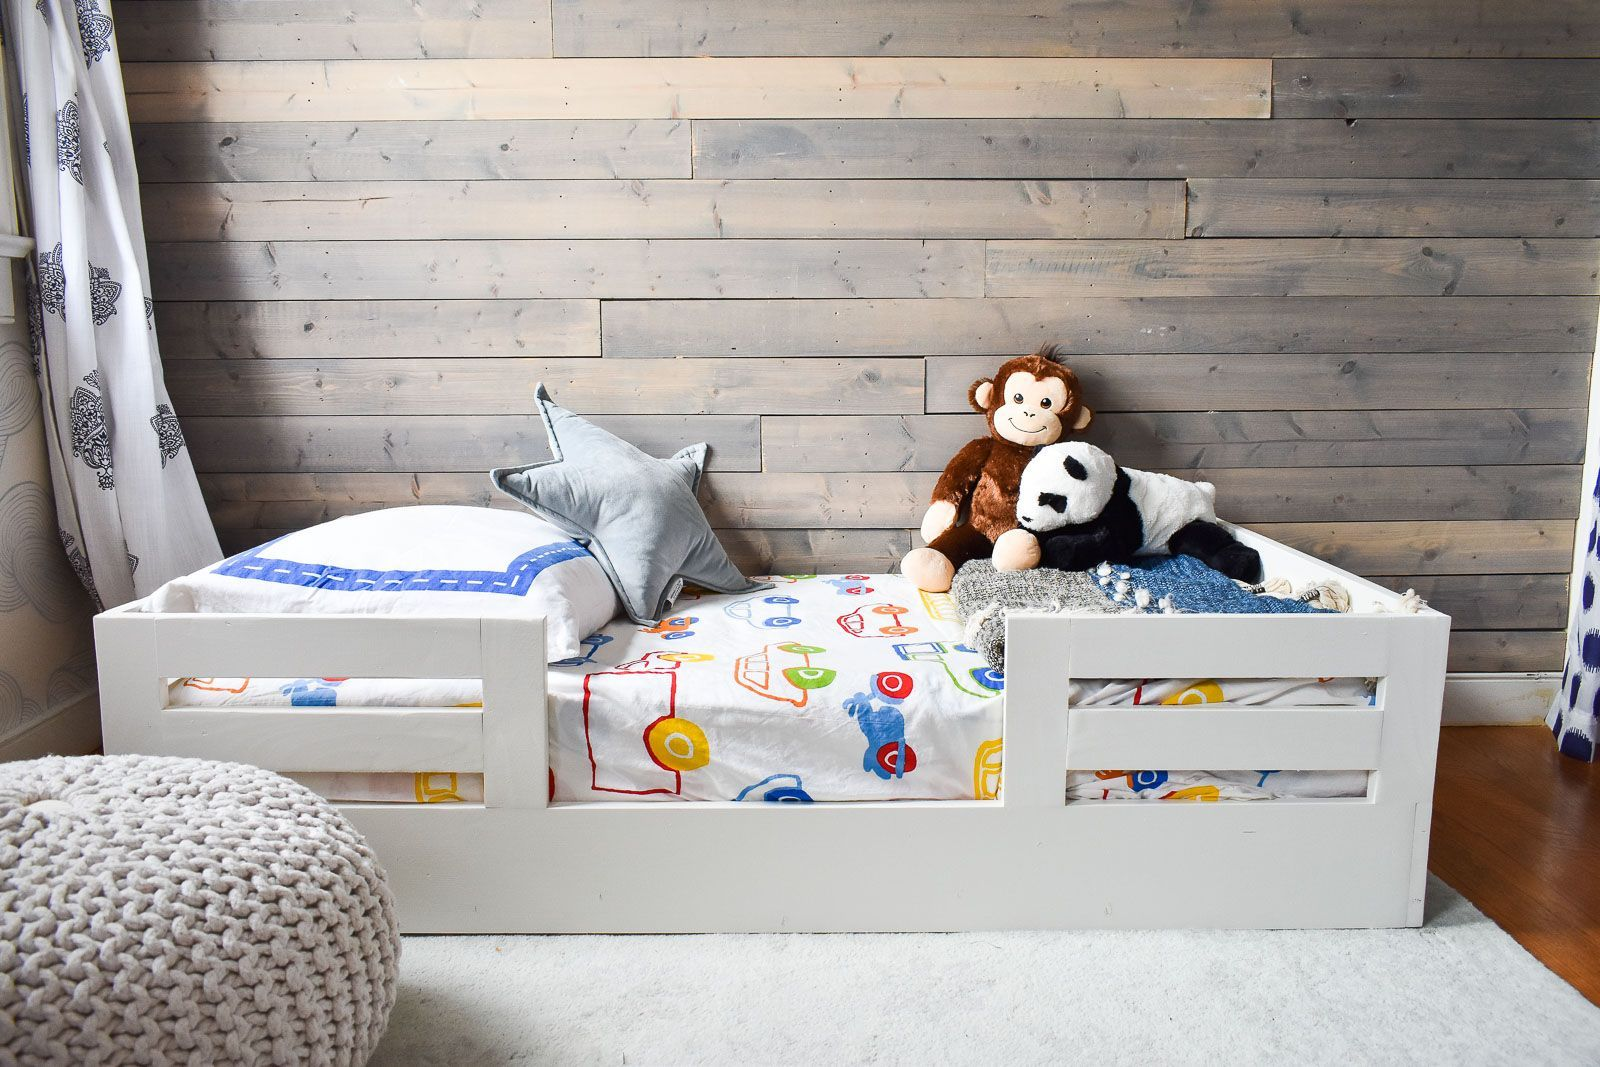 How to Build a Toddler Bed with Bed Rails (With images